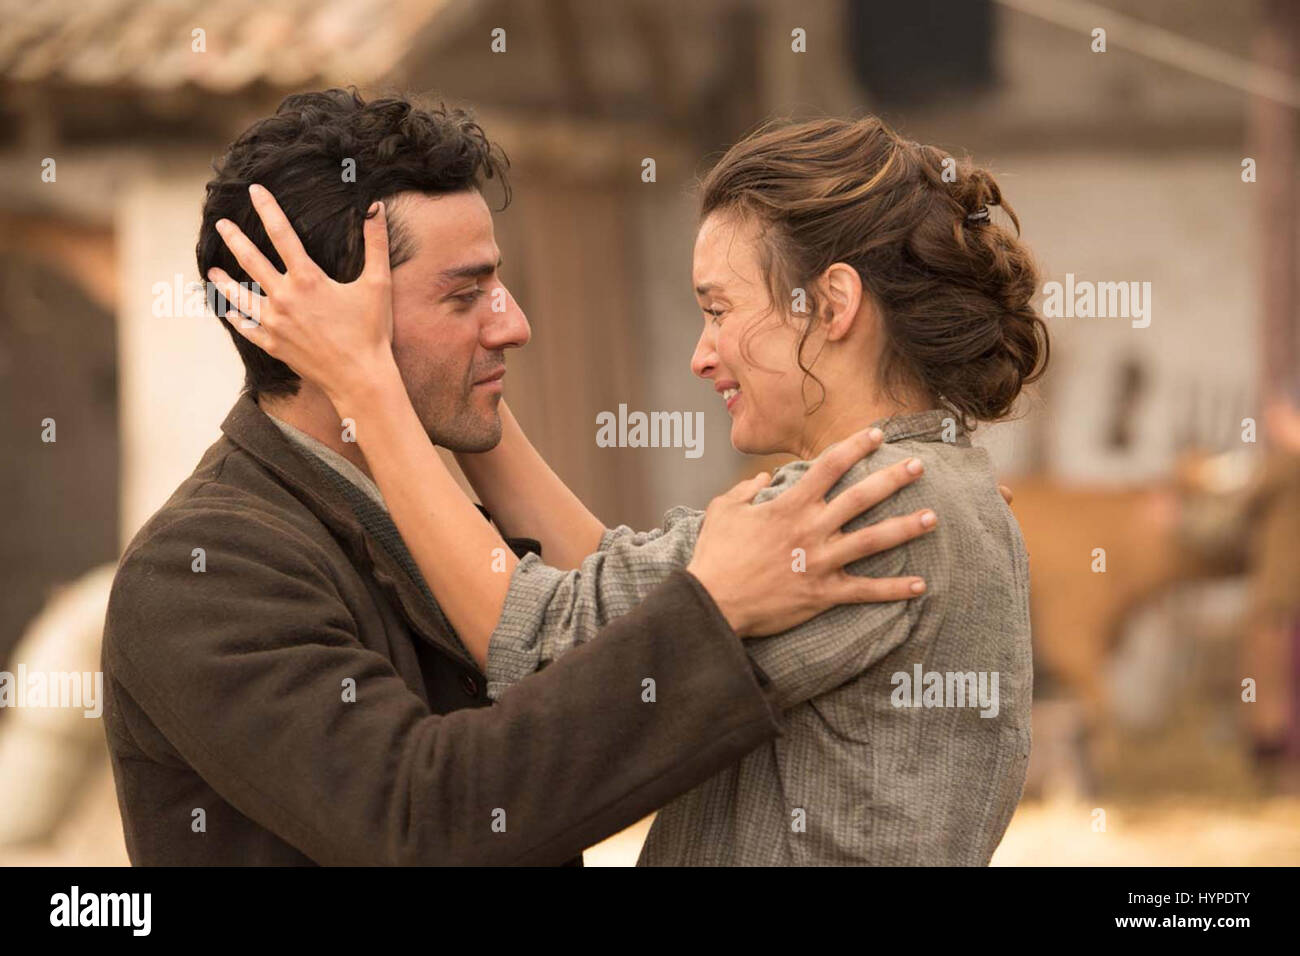 THE PROMISE (2016)  OSCAR ISAAC  CHARLOTTE LE BON  TERRY GEORGE (DIR)  SURVIVAL PICTURES/MOVIESTORE COLLECTION LTD - Stock Image